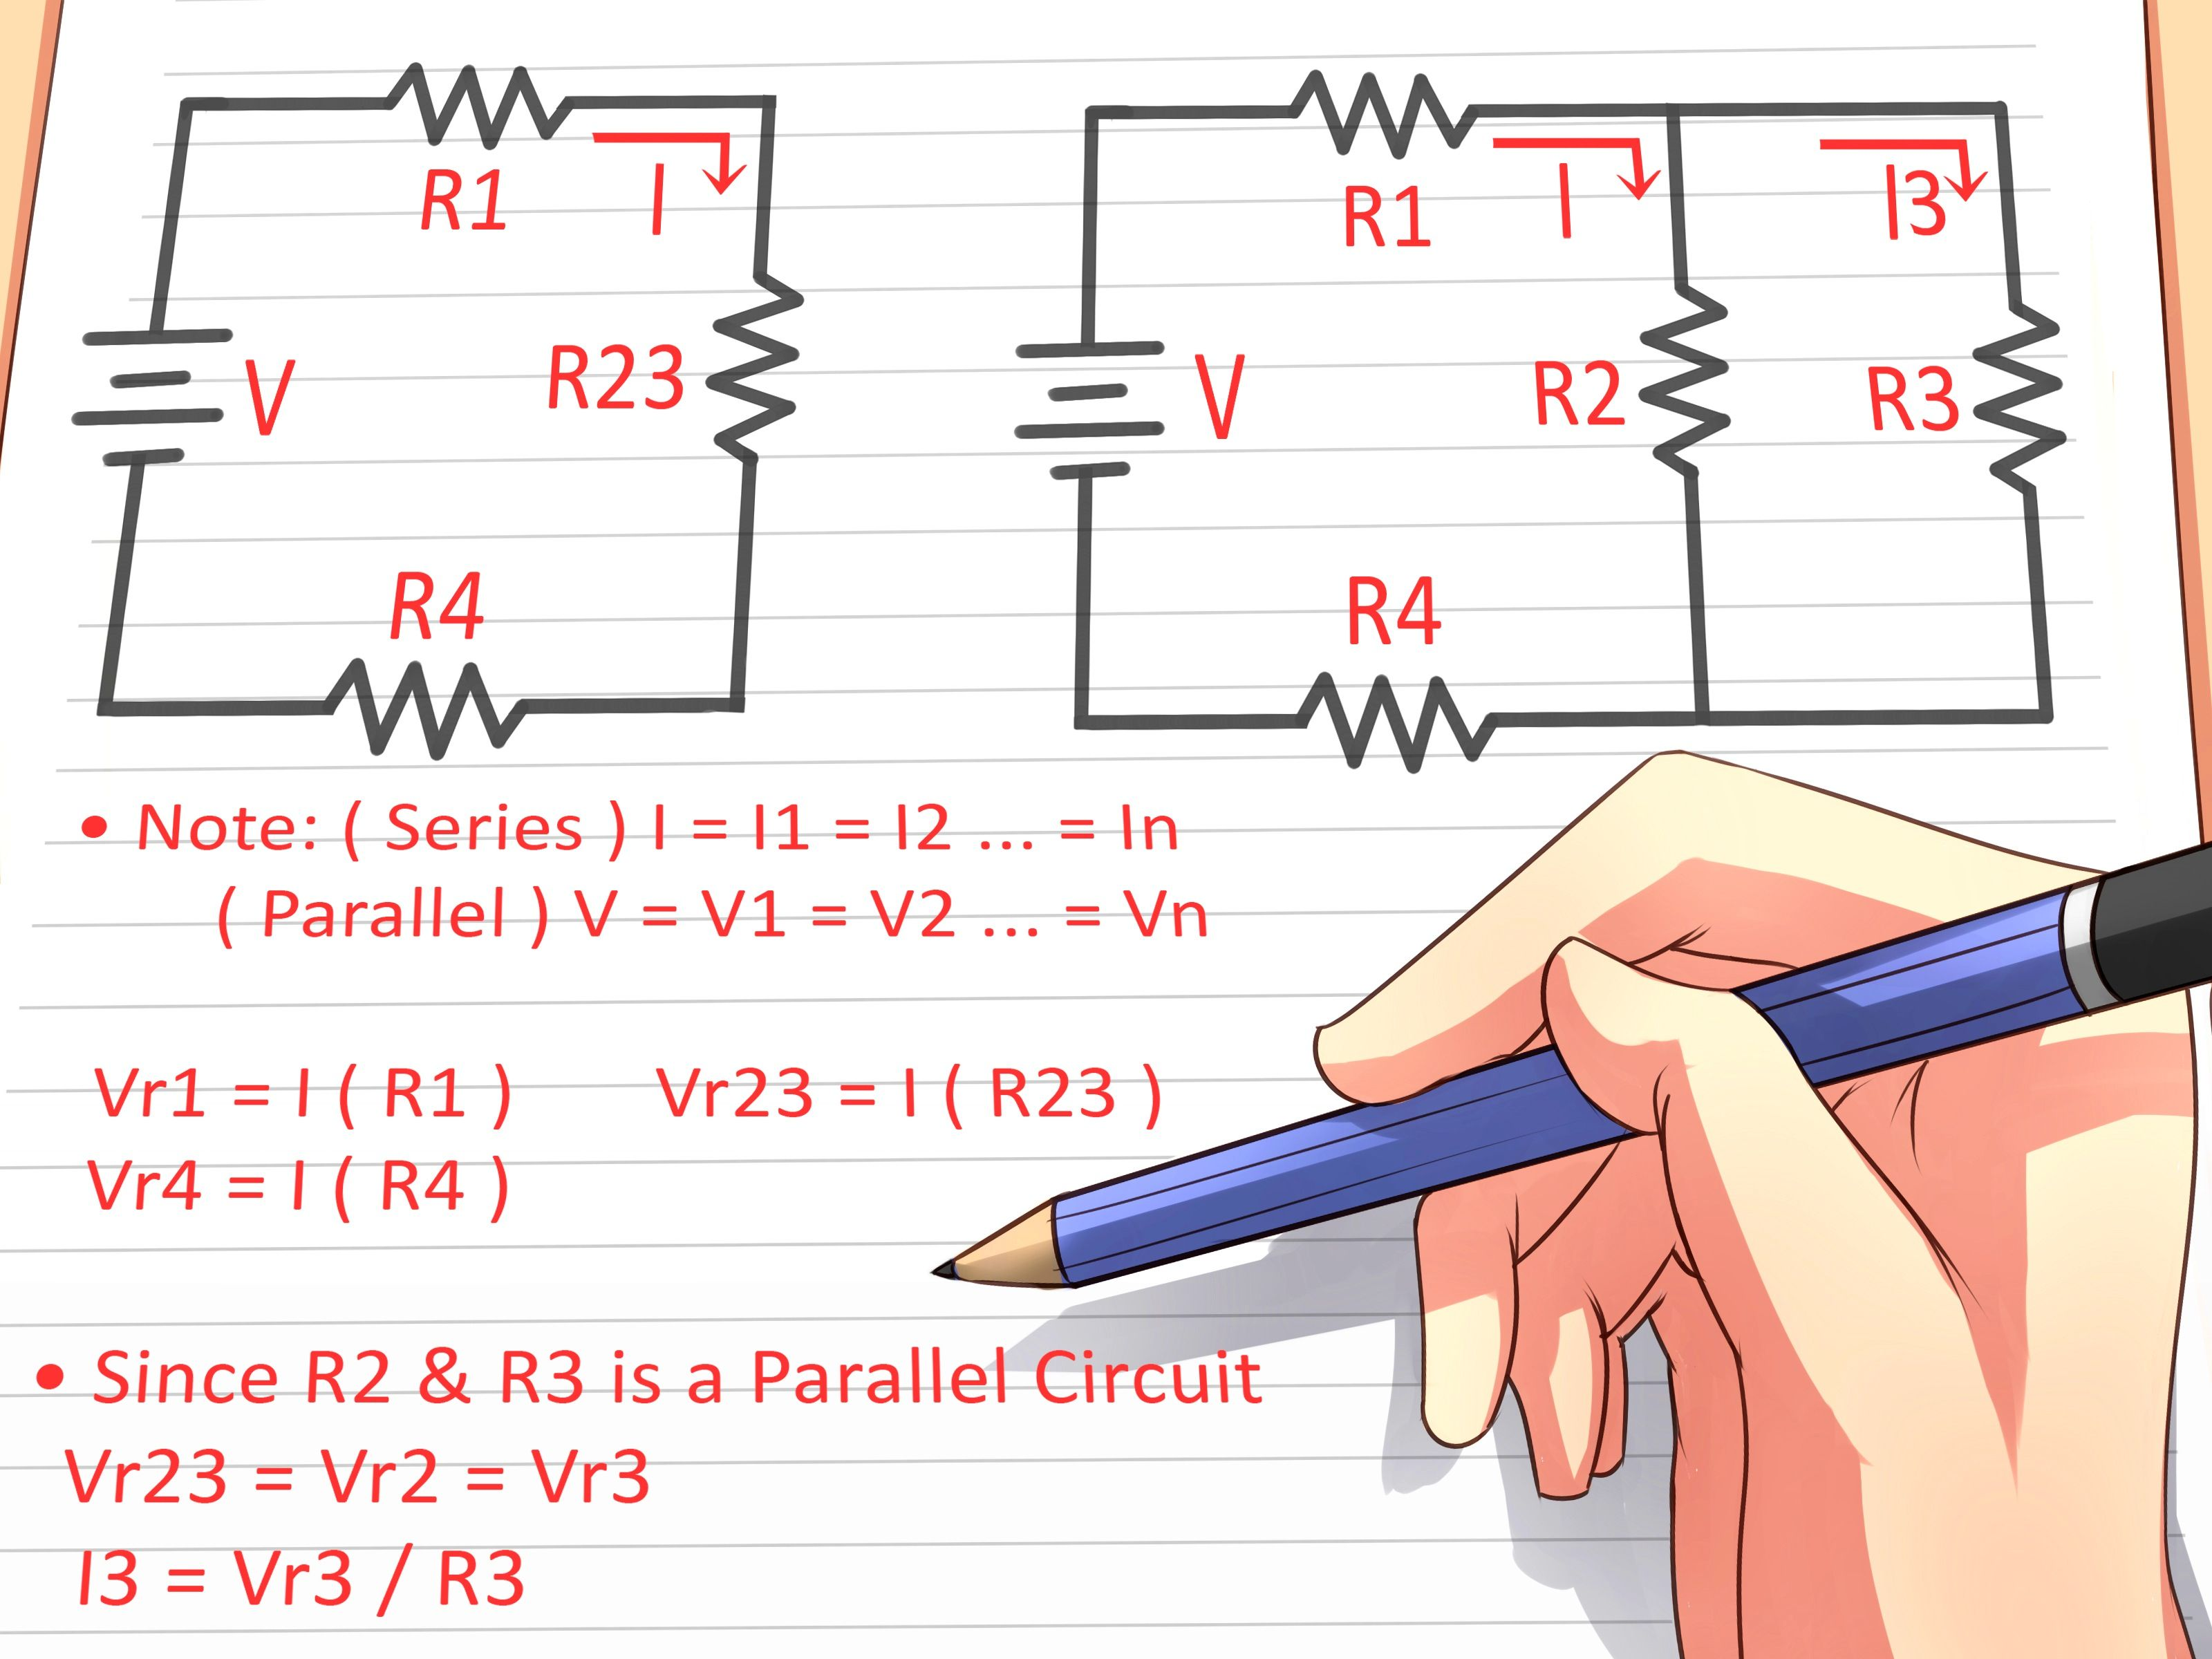 Component how to analyze resistive circuits using ohms law 3 steps component how to analyze resistive circuits using ohms law 3 steps find voltage drop in greentooth